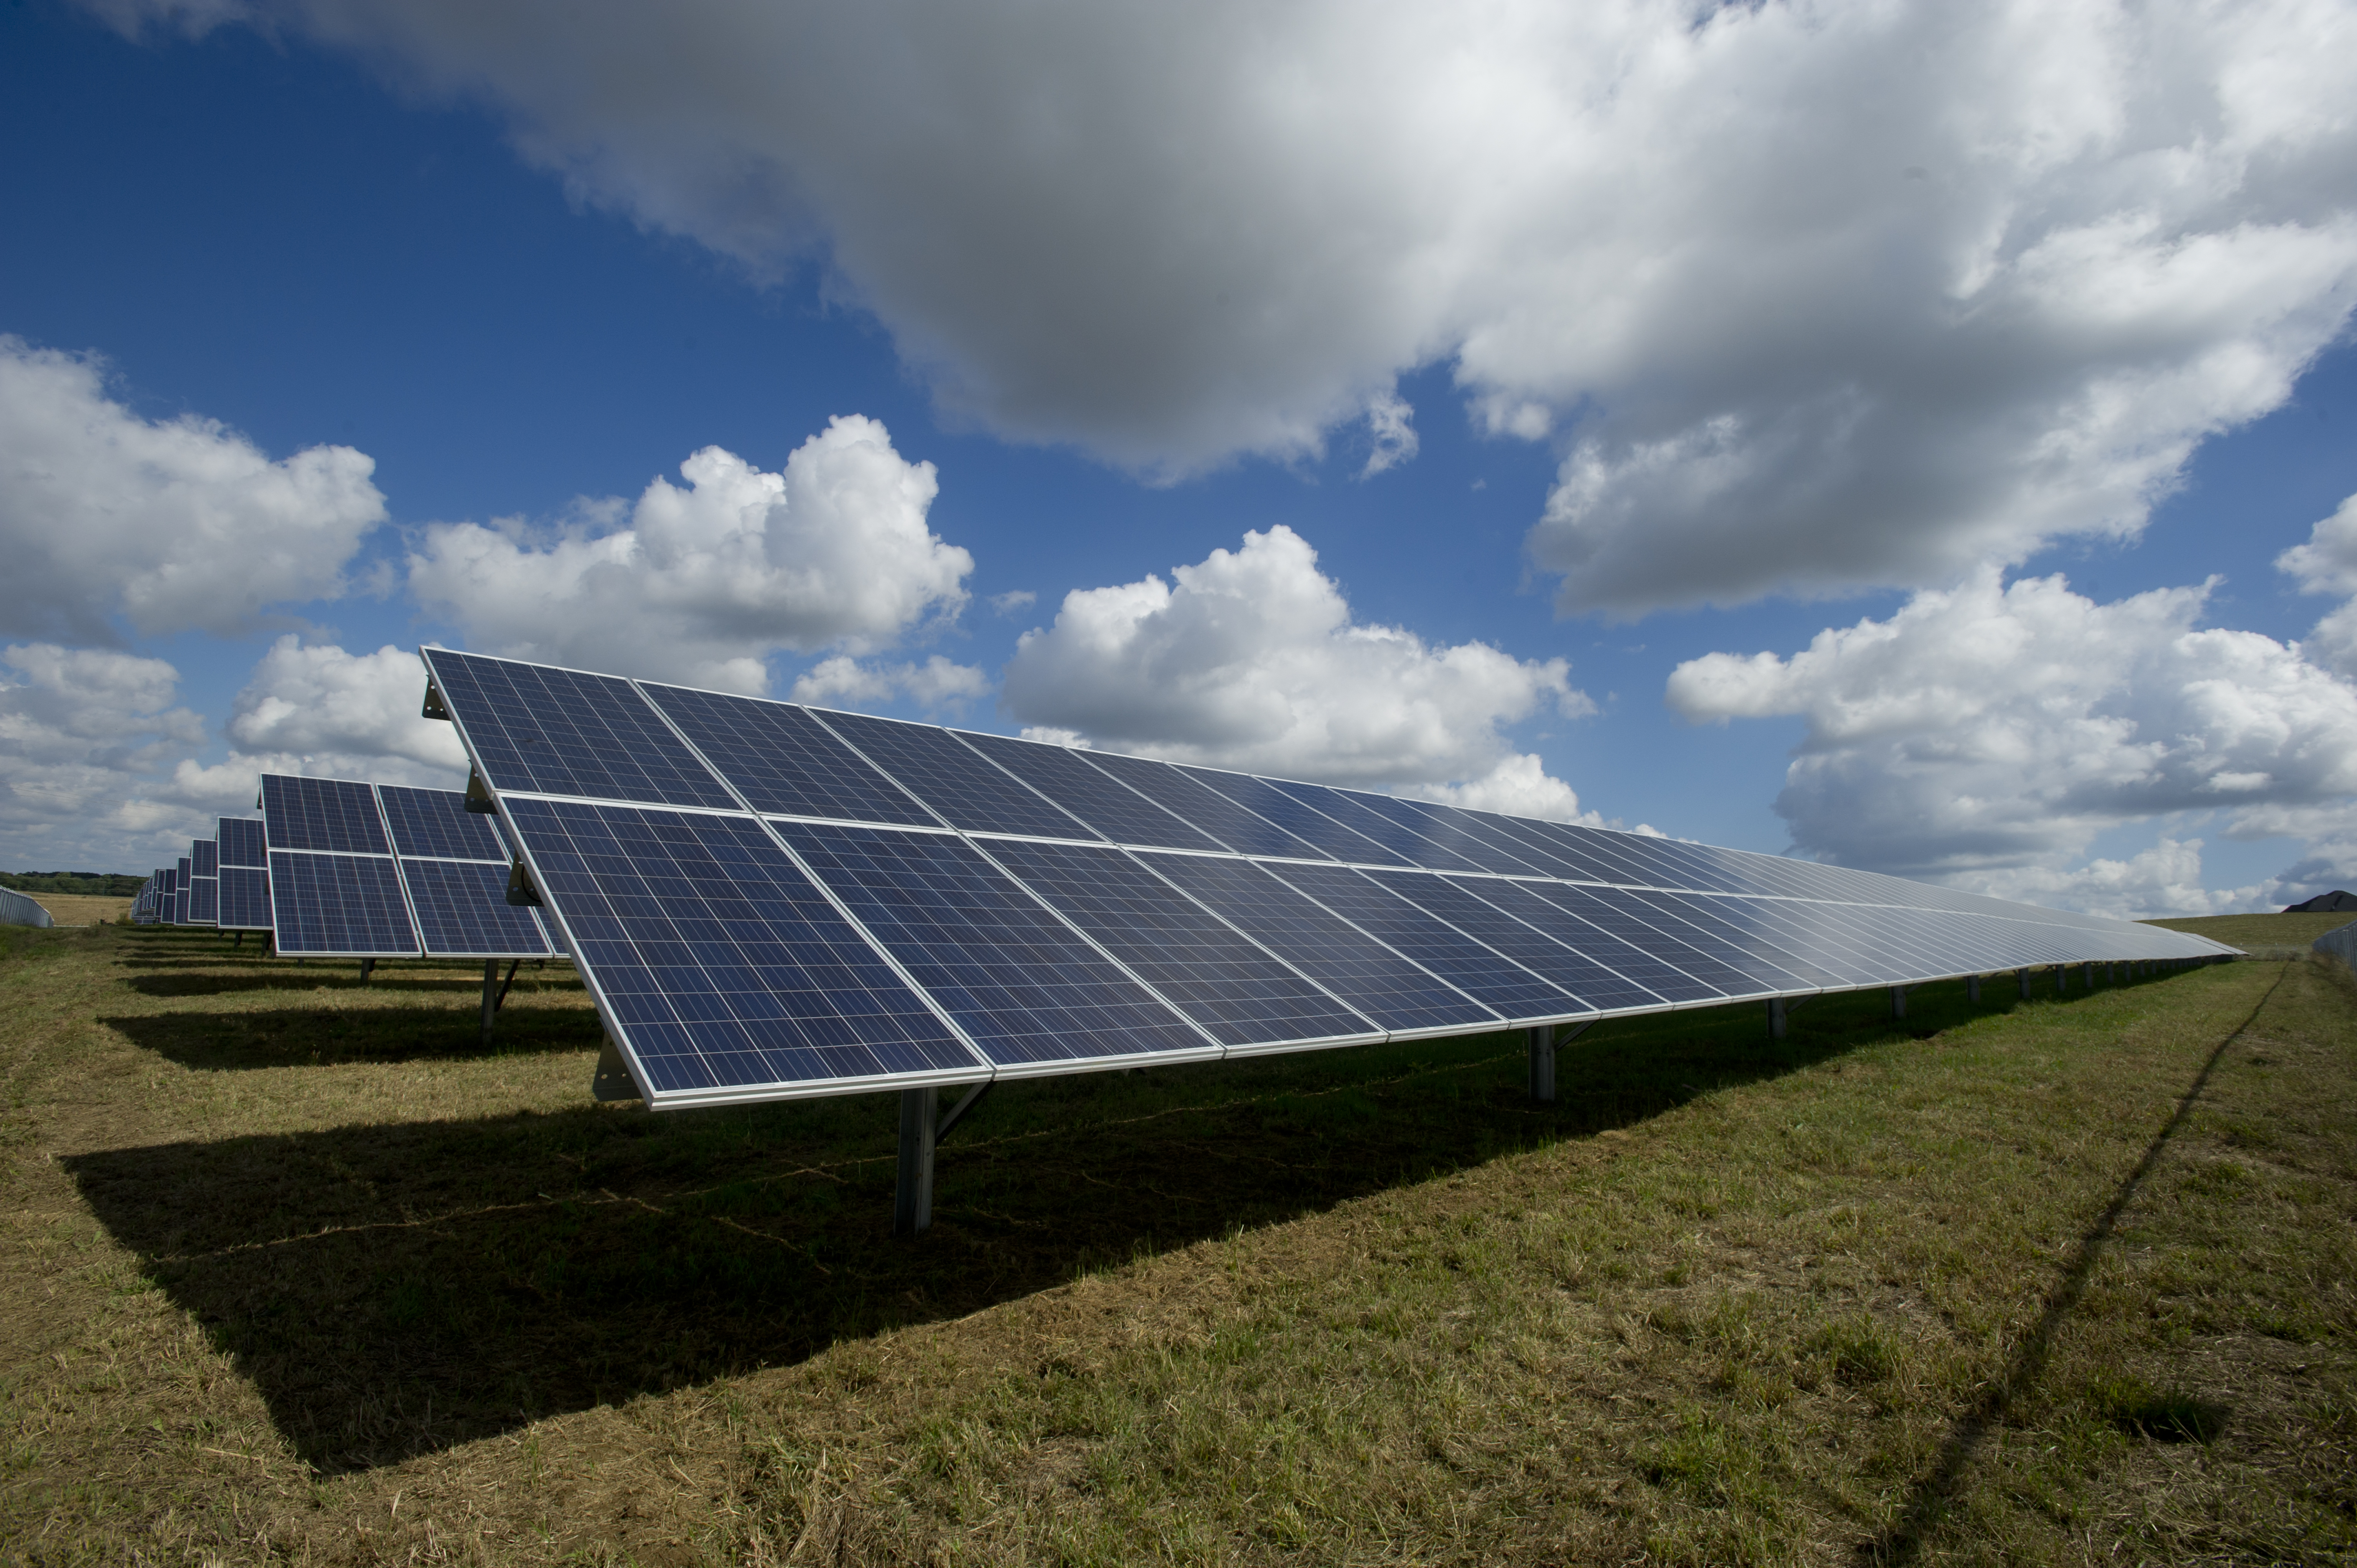 Solar Cells to Power your Phone